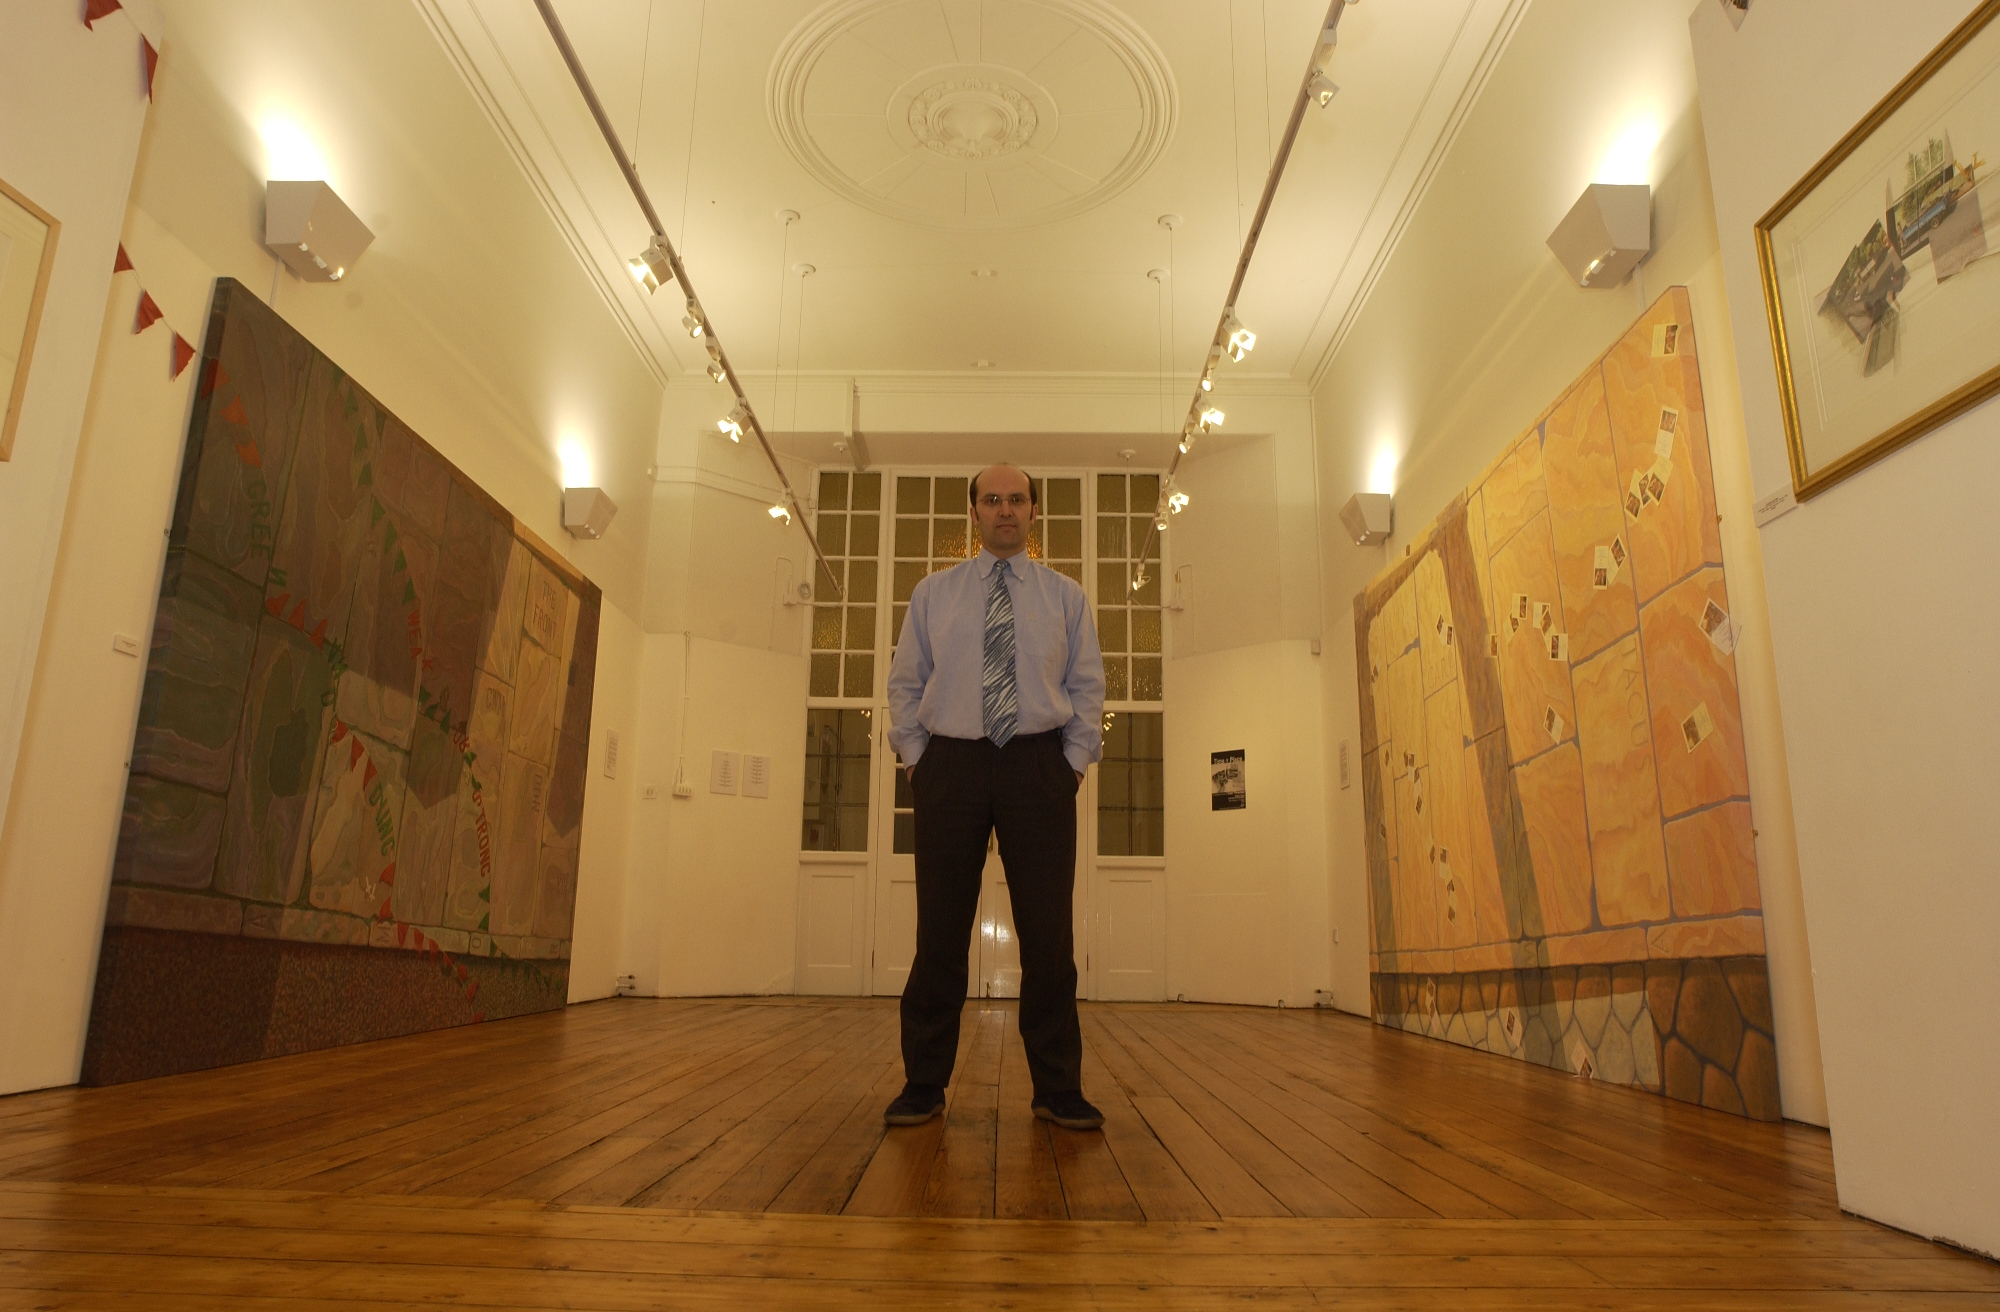 Ceri Thomas in his 'Time + Place' exhibition, 2004